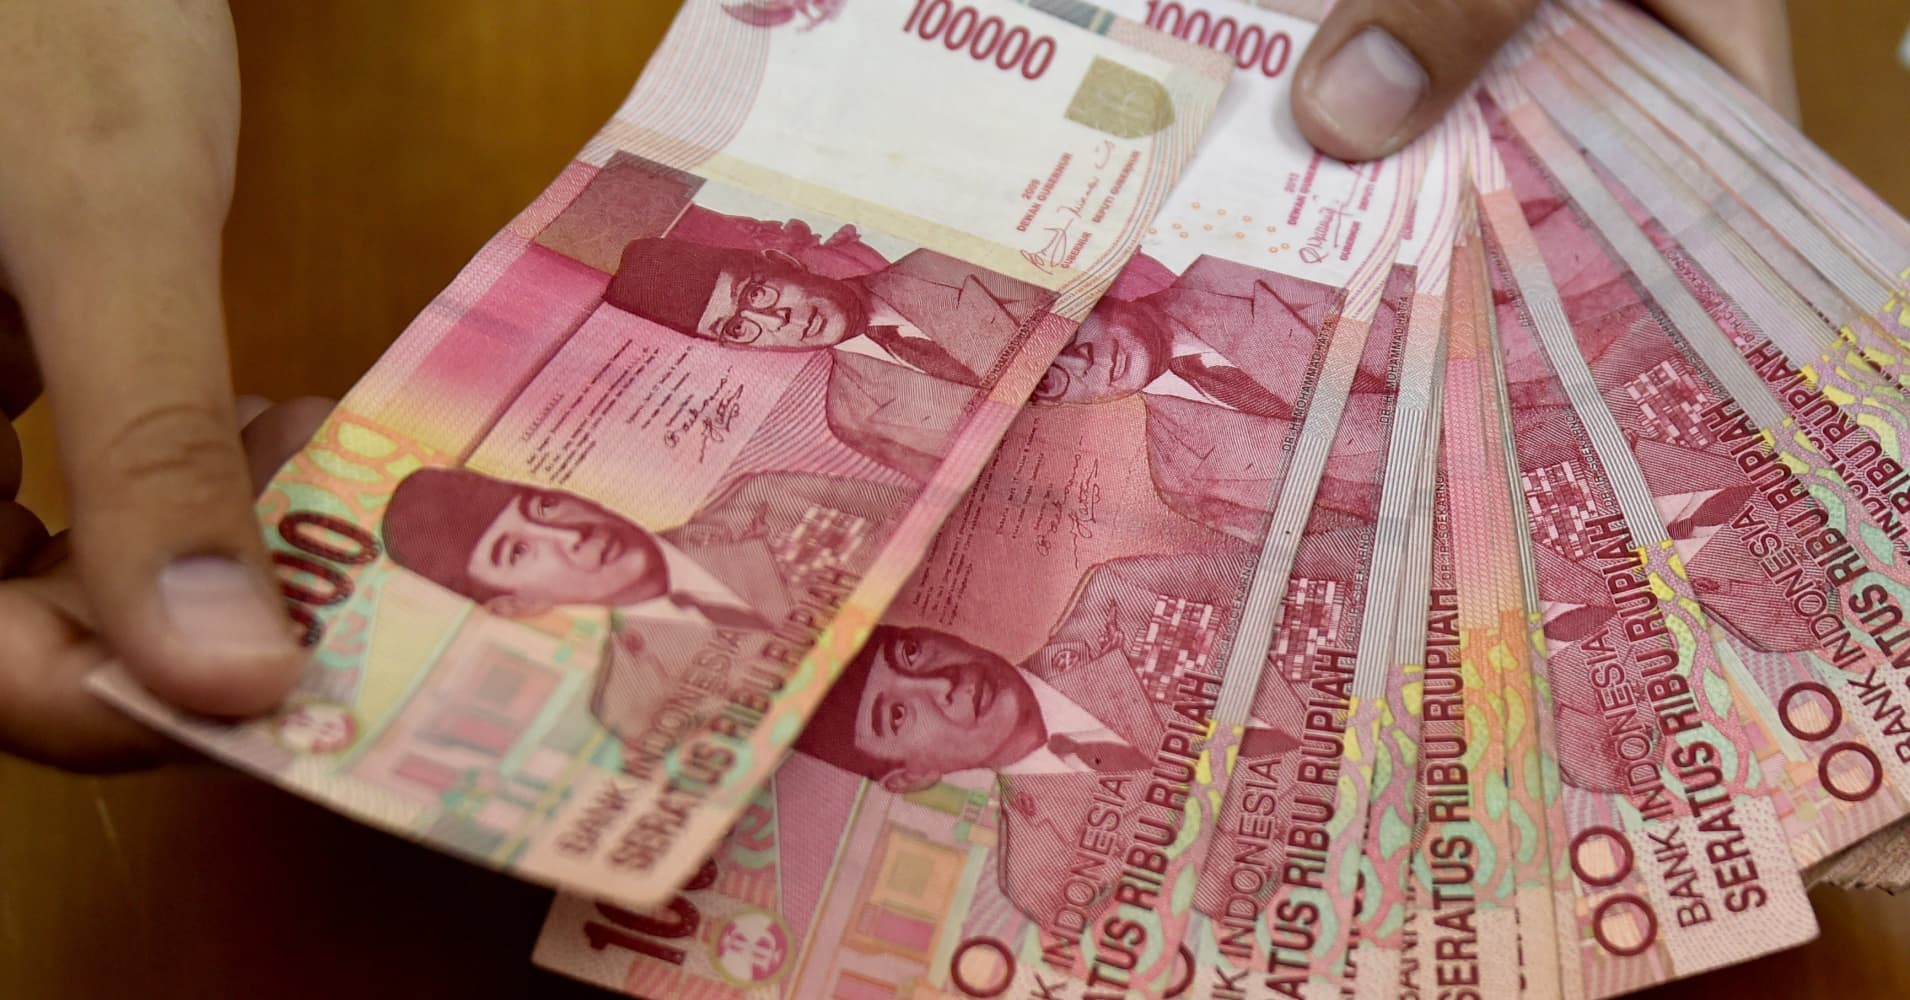 Indonesia Central Bank Looks To Slash Zeroes Off Its